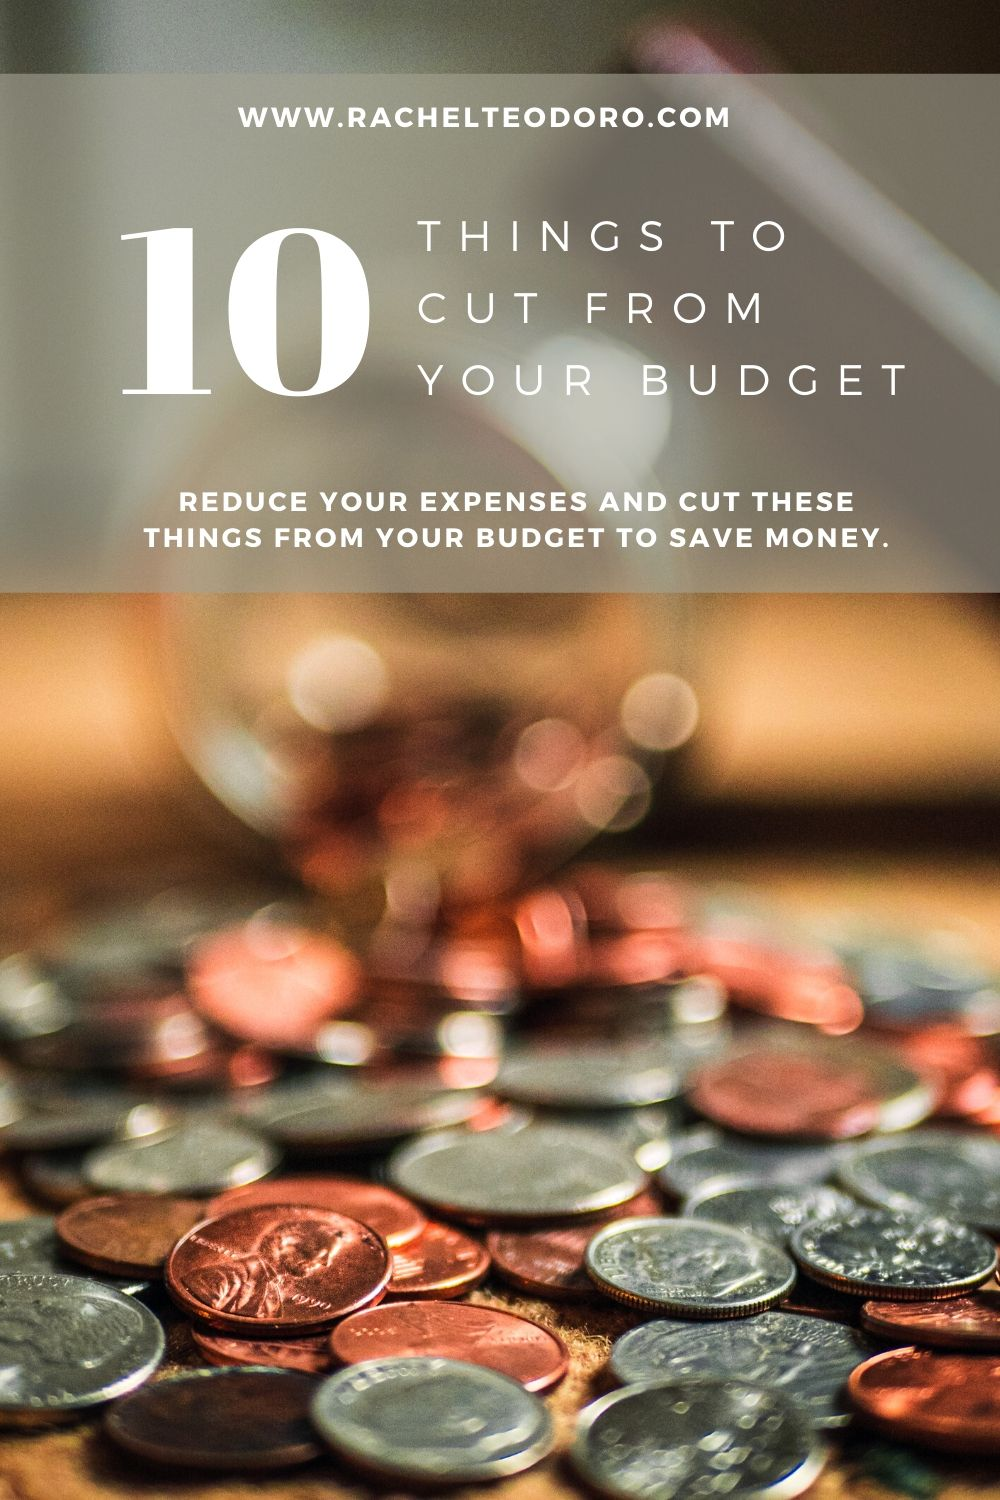 living well on less and cutting unnecessary expenses from your budget